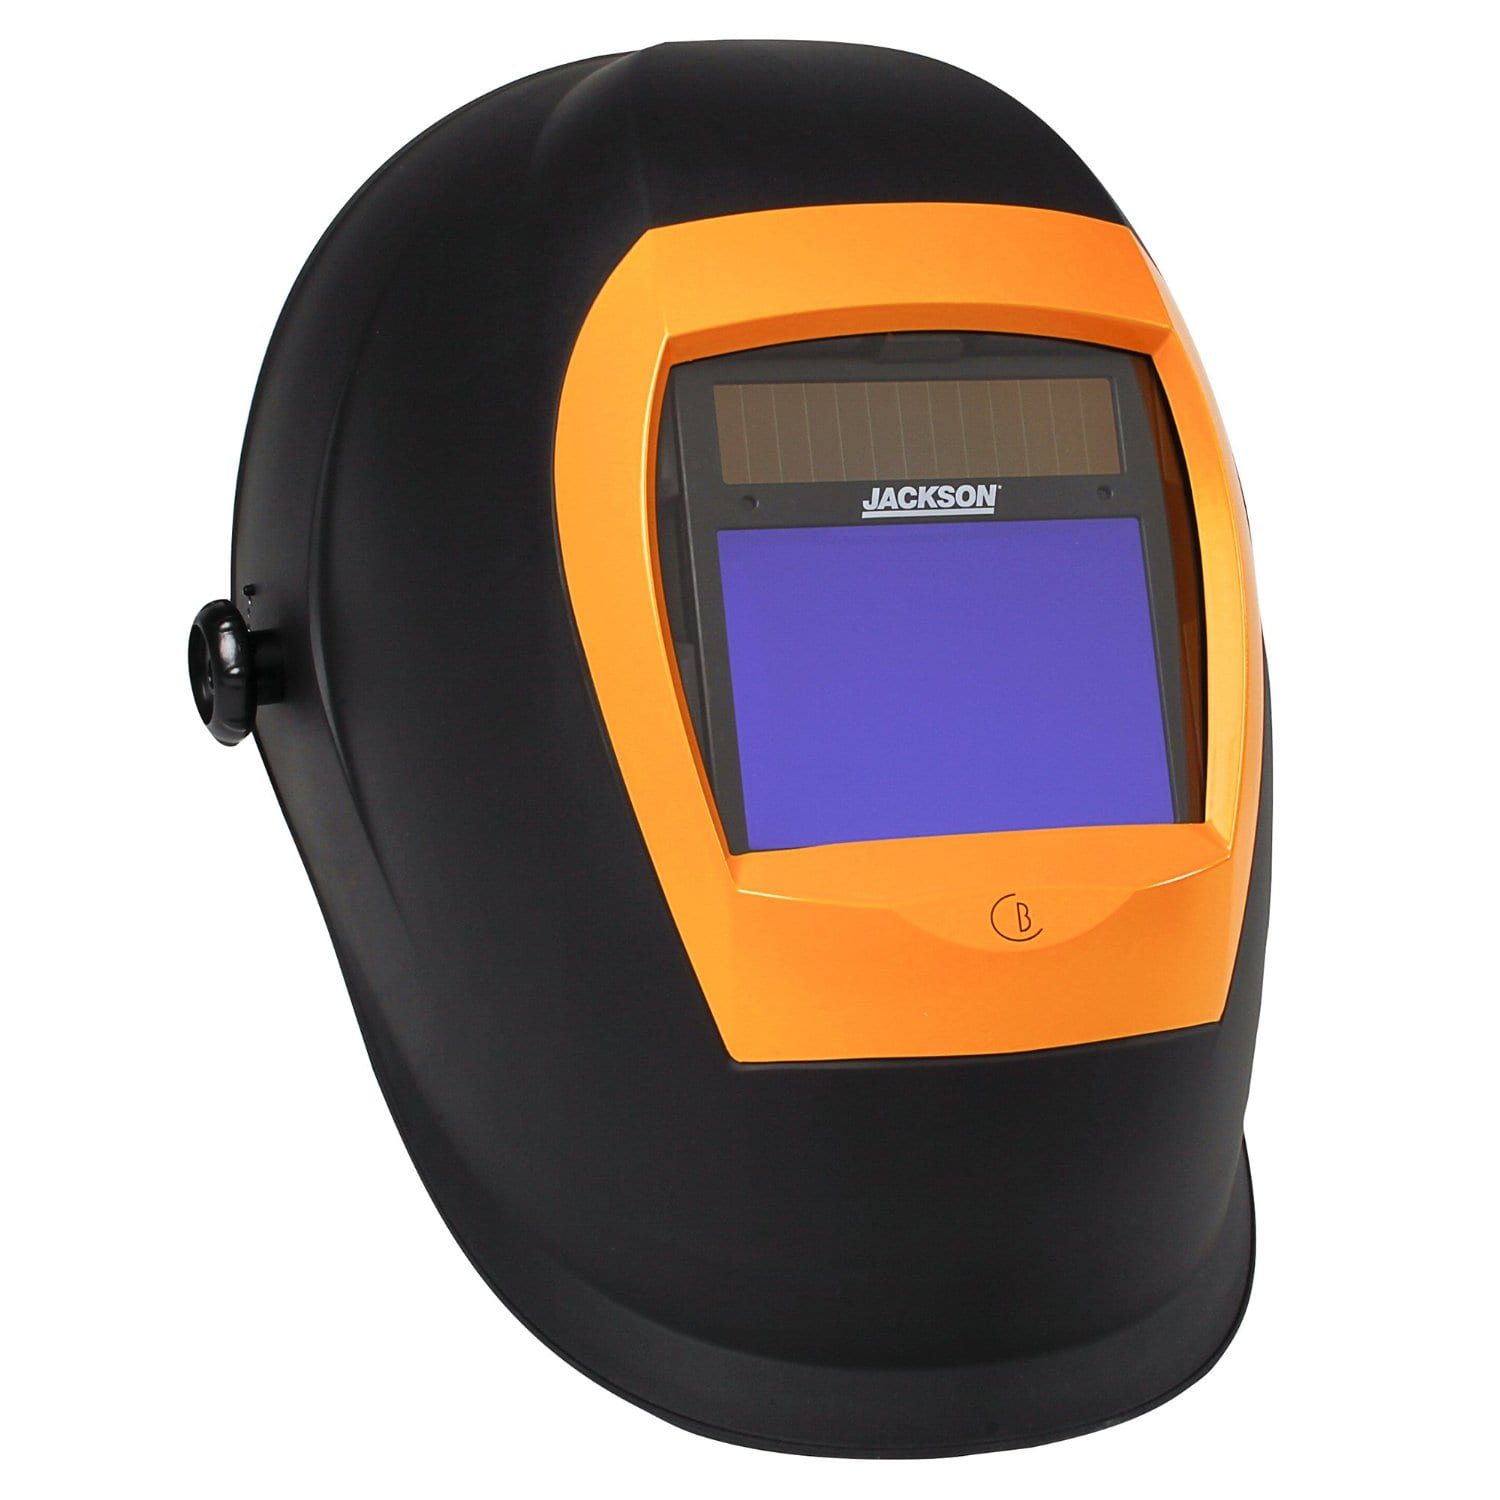 Jackson Safety W70 BH3 Grand DS Auto Darkening Welding Helmet Review